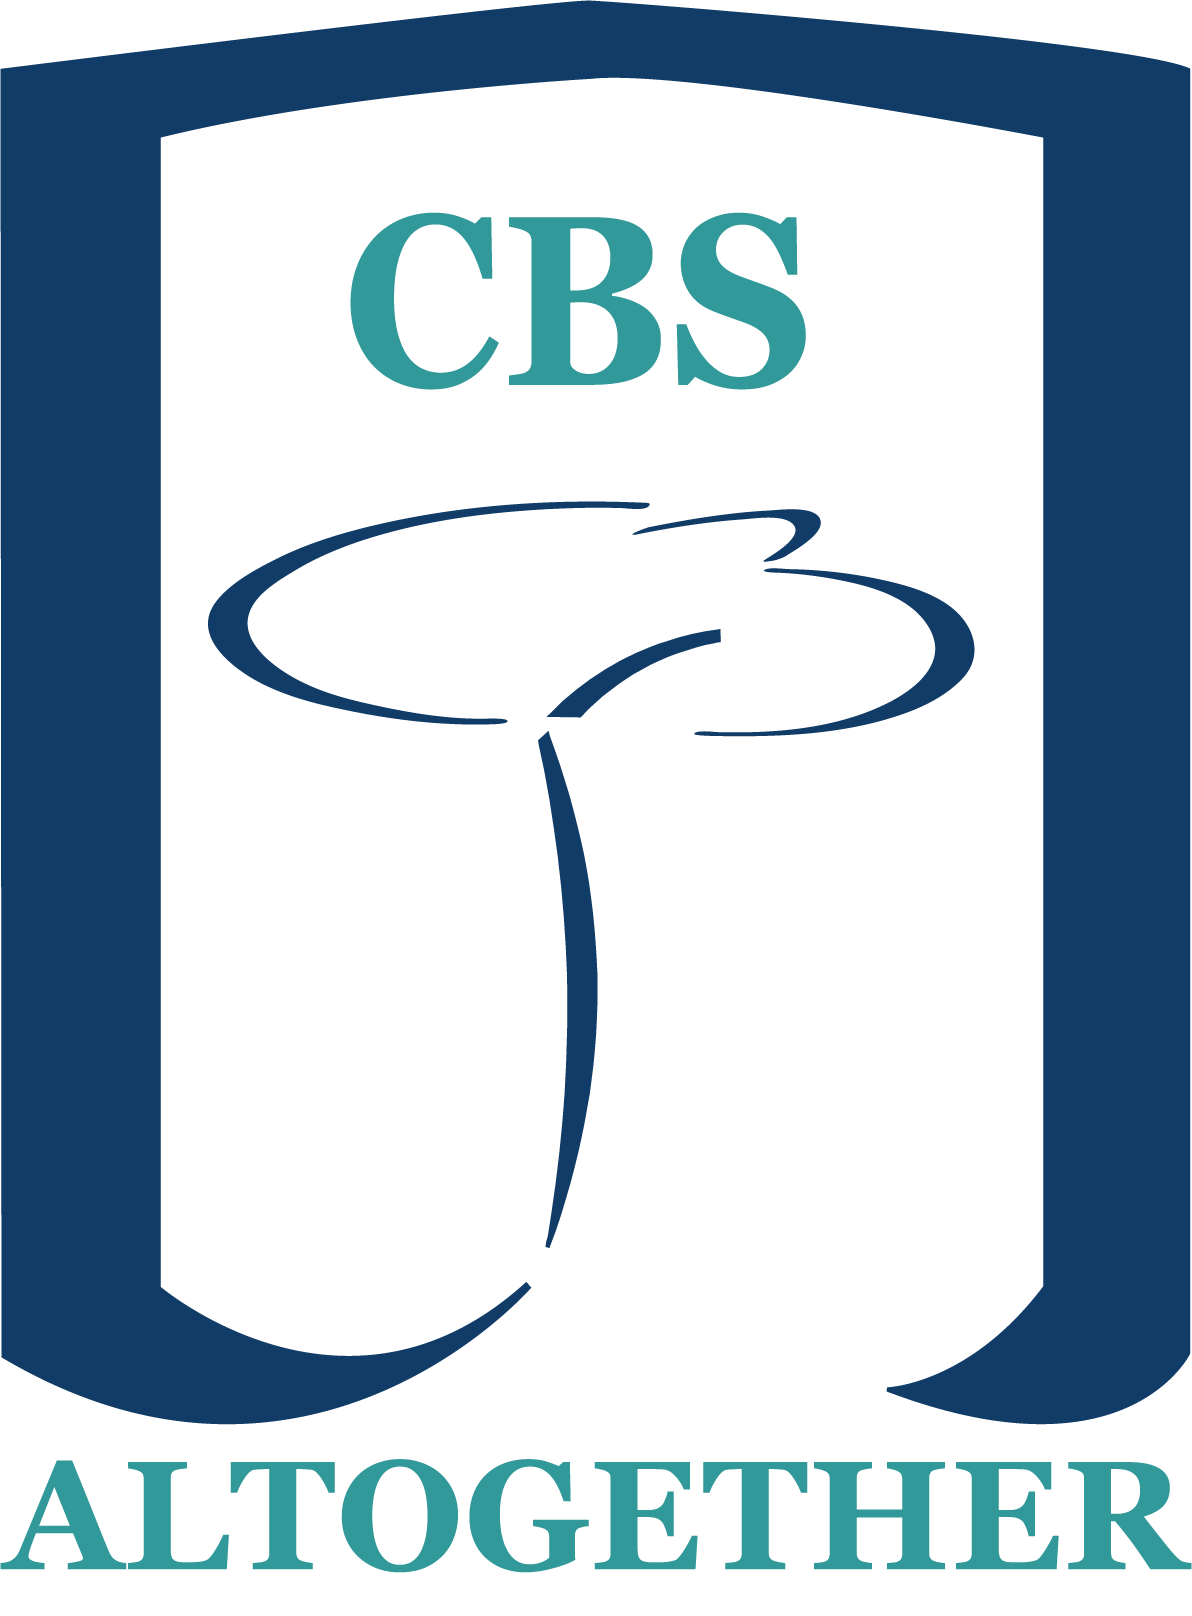 Entorno CBS | CBS Altogether